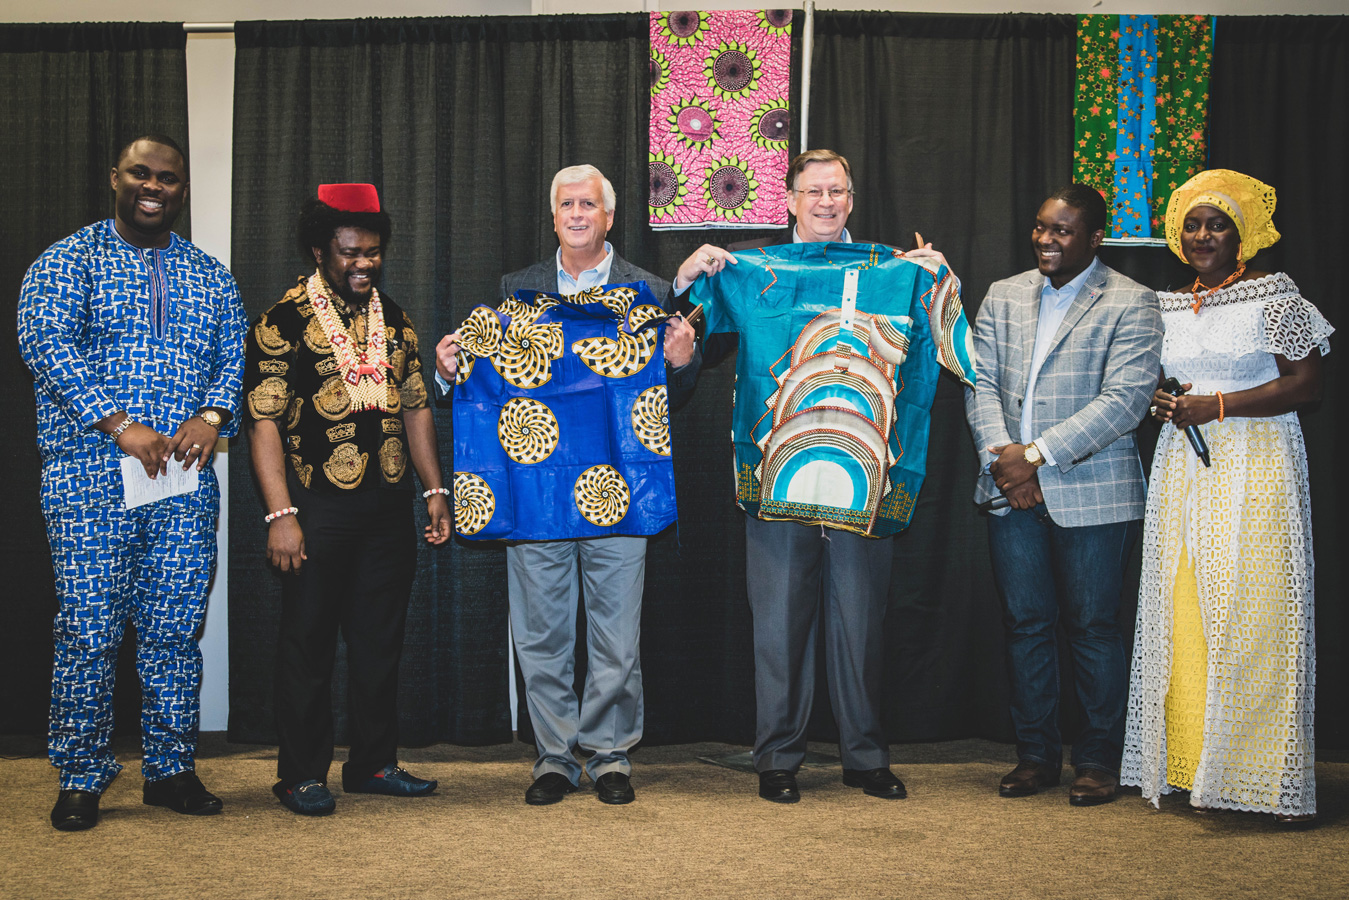 Ruston Mayor Ronny Walker and Tech President Dr. Les Guice with African MegaFest shirts on stage